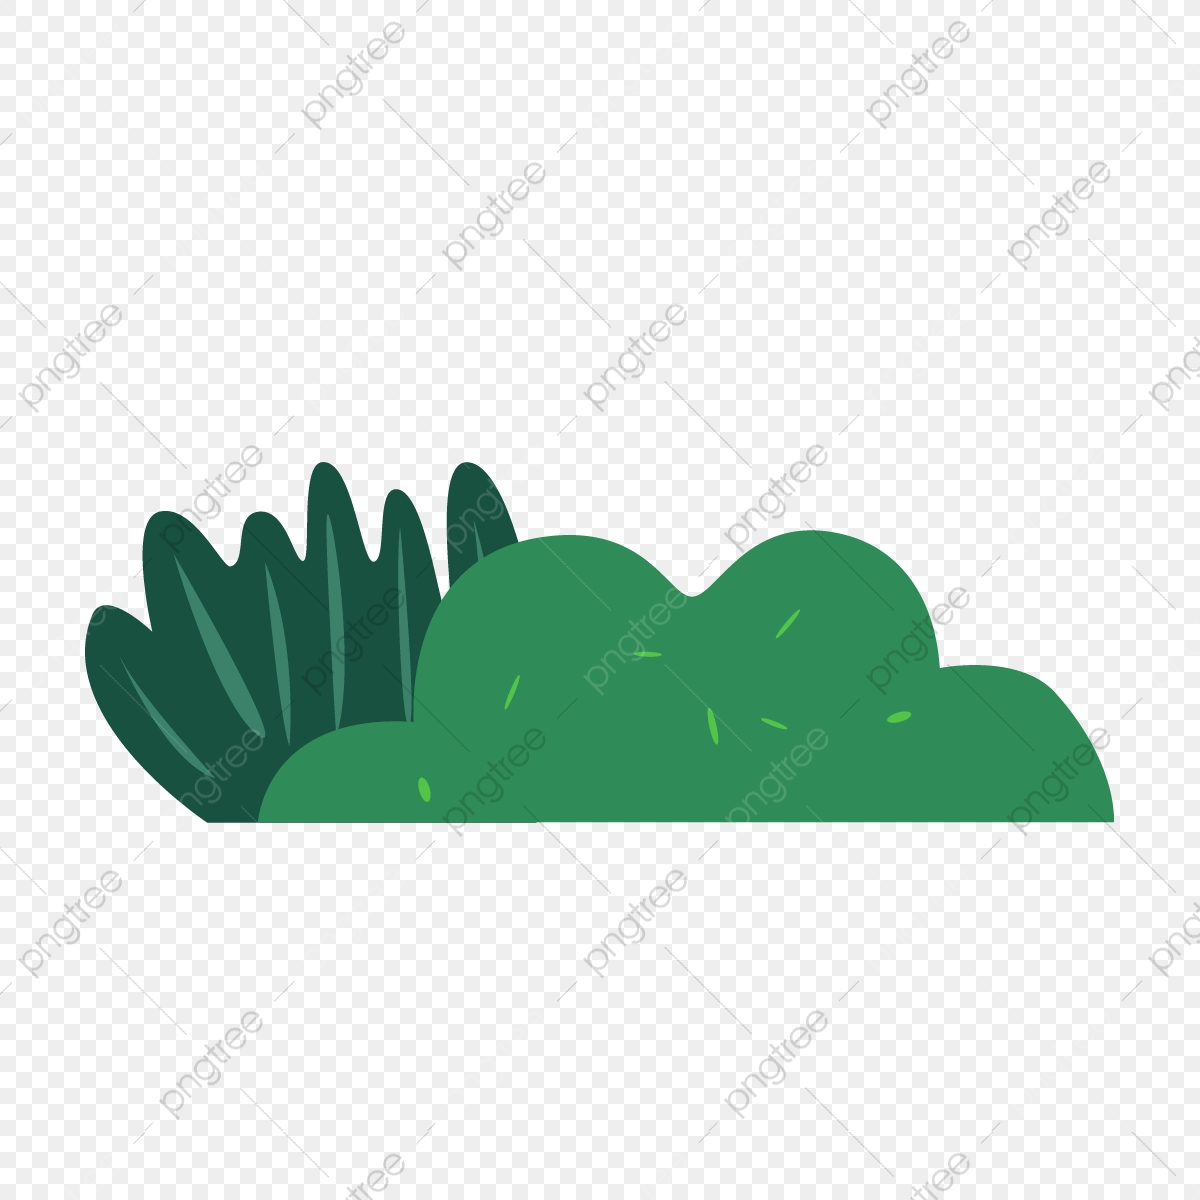 The illustration png . Clipart grass cute